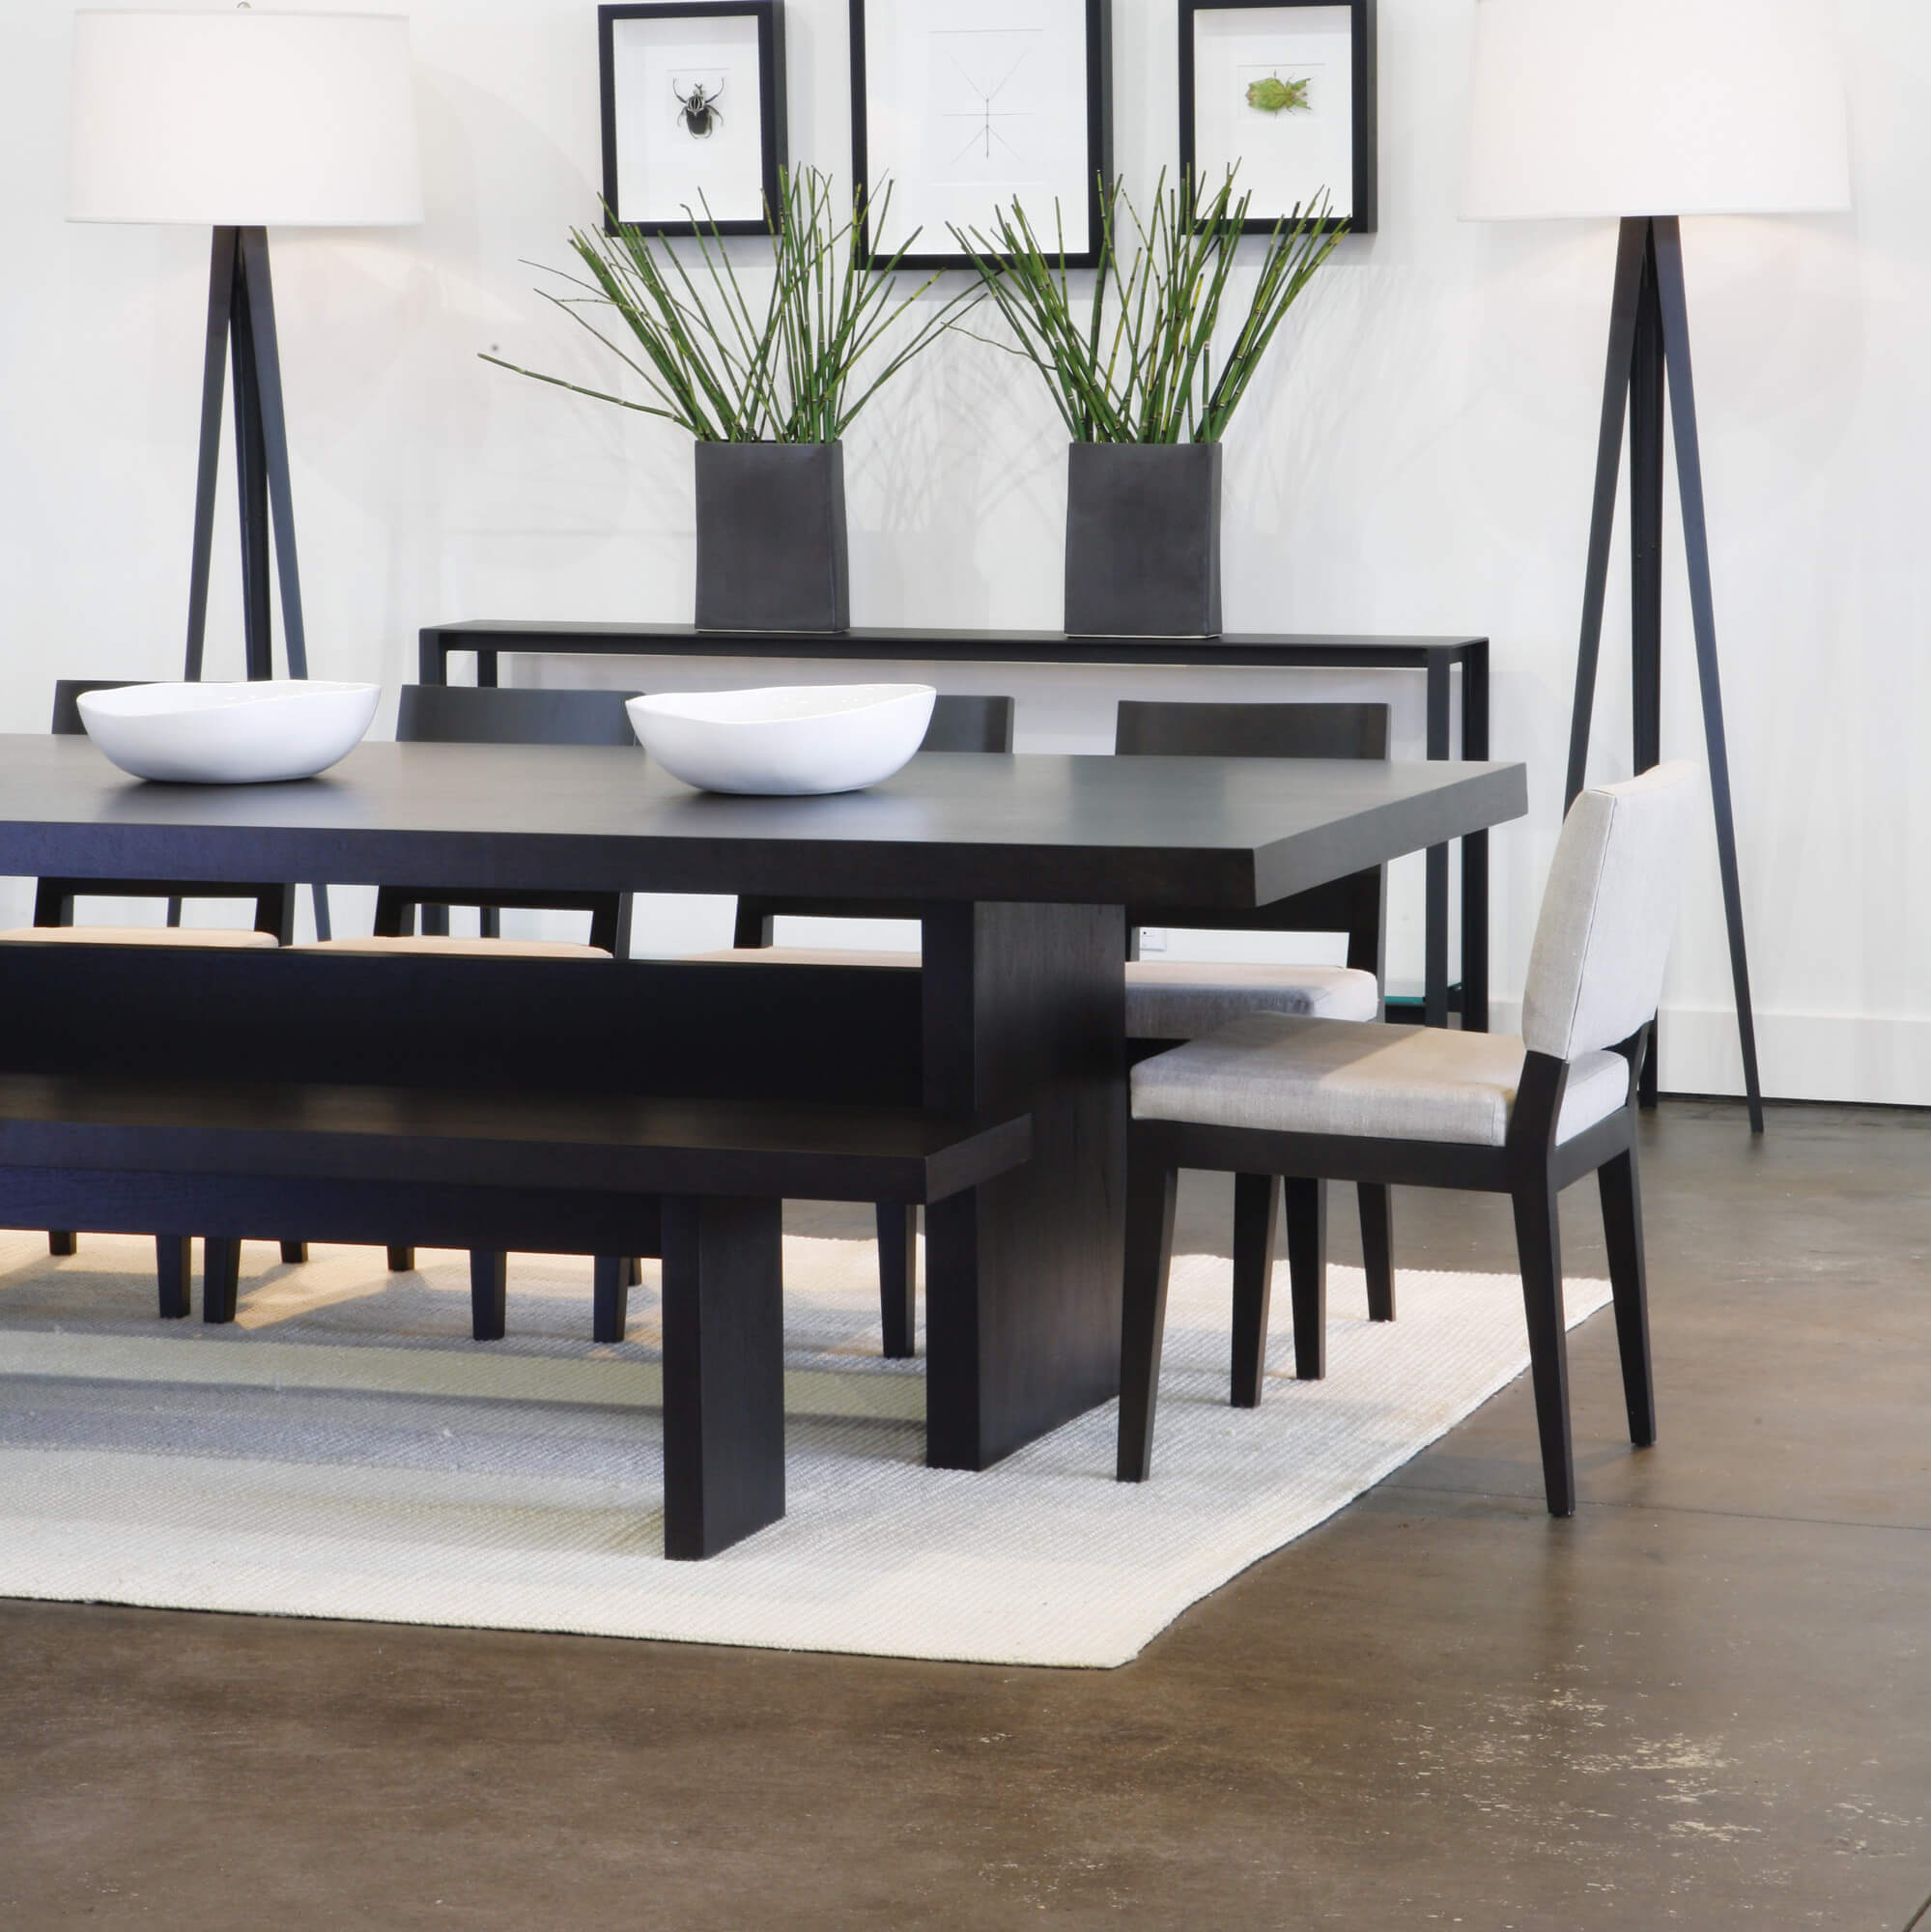 Elegant 5 Piece Modern Dining Room Set With Bench. This Is A Great Dining Room  Furniture